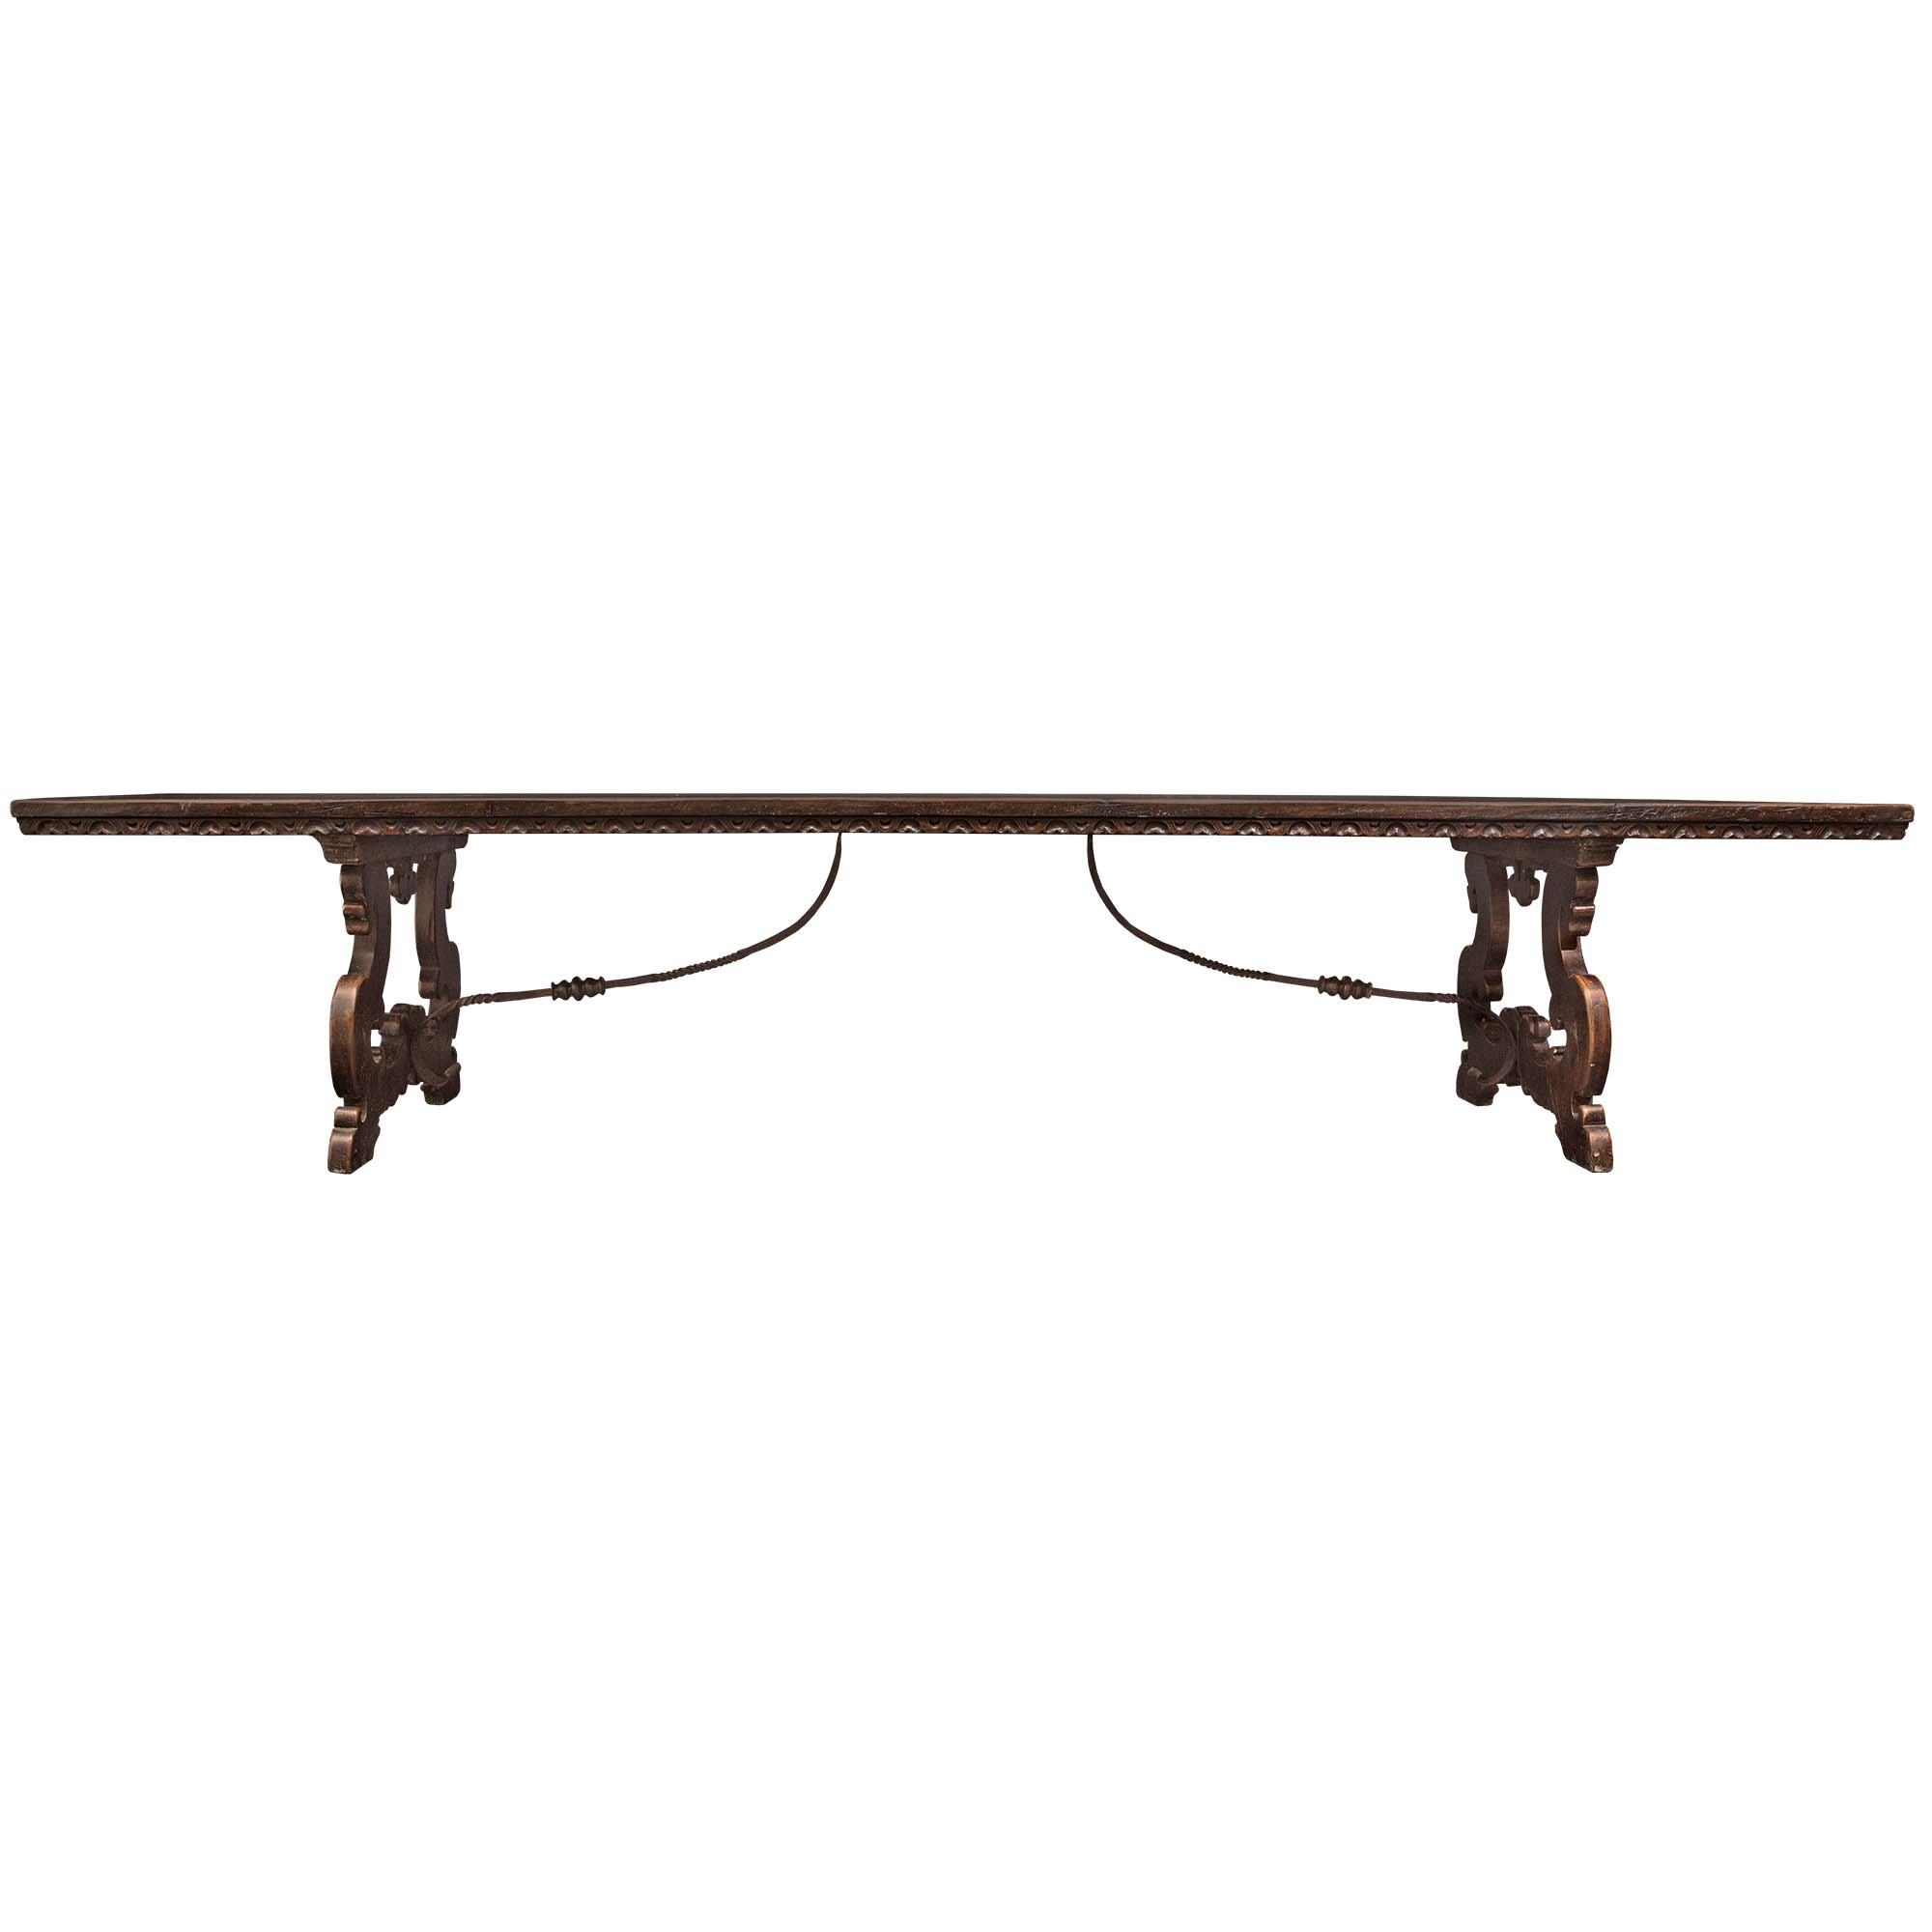 18th Century Spanish Solid Walnut Trestle Dining Table